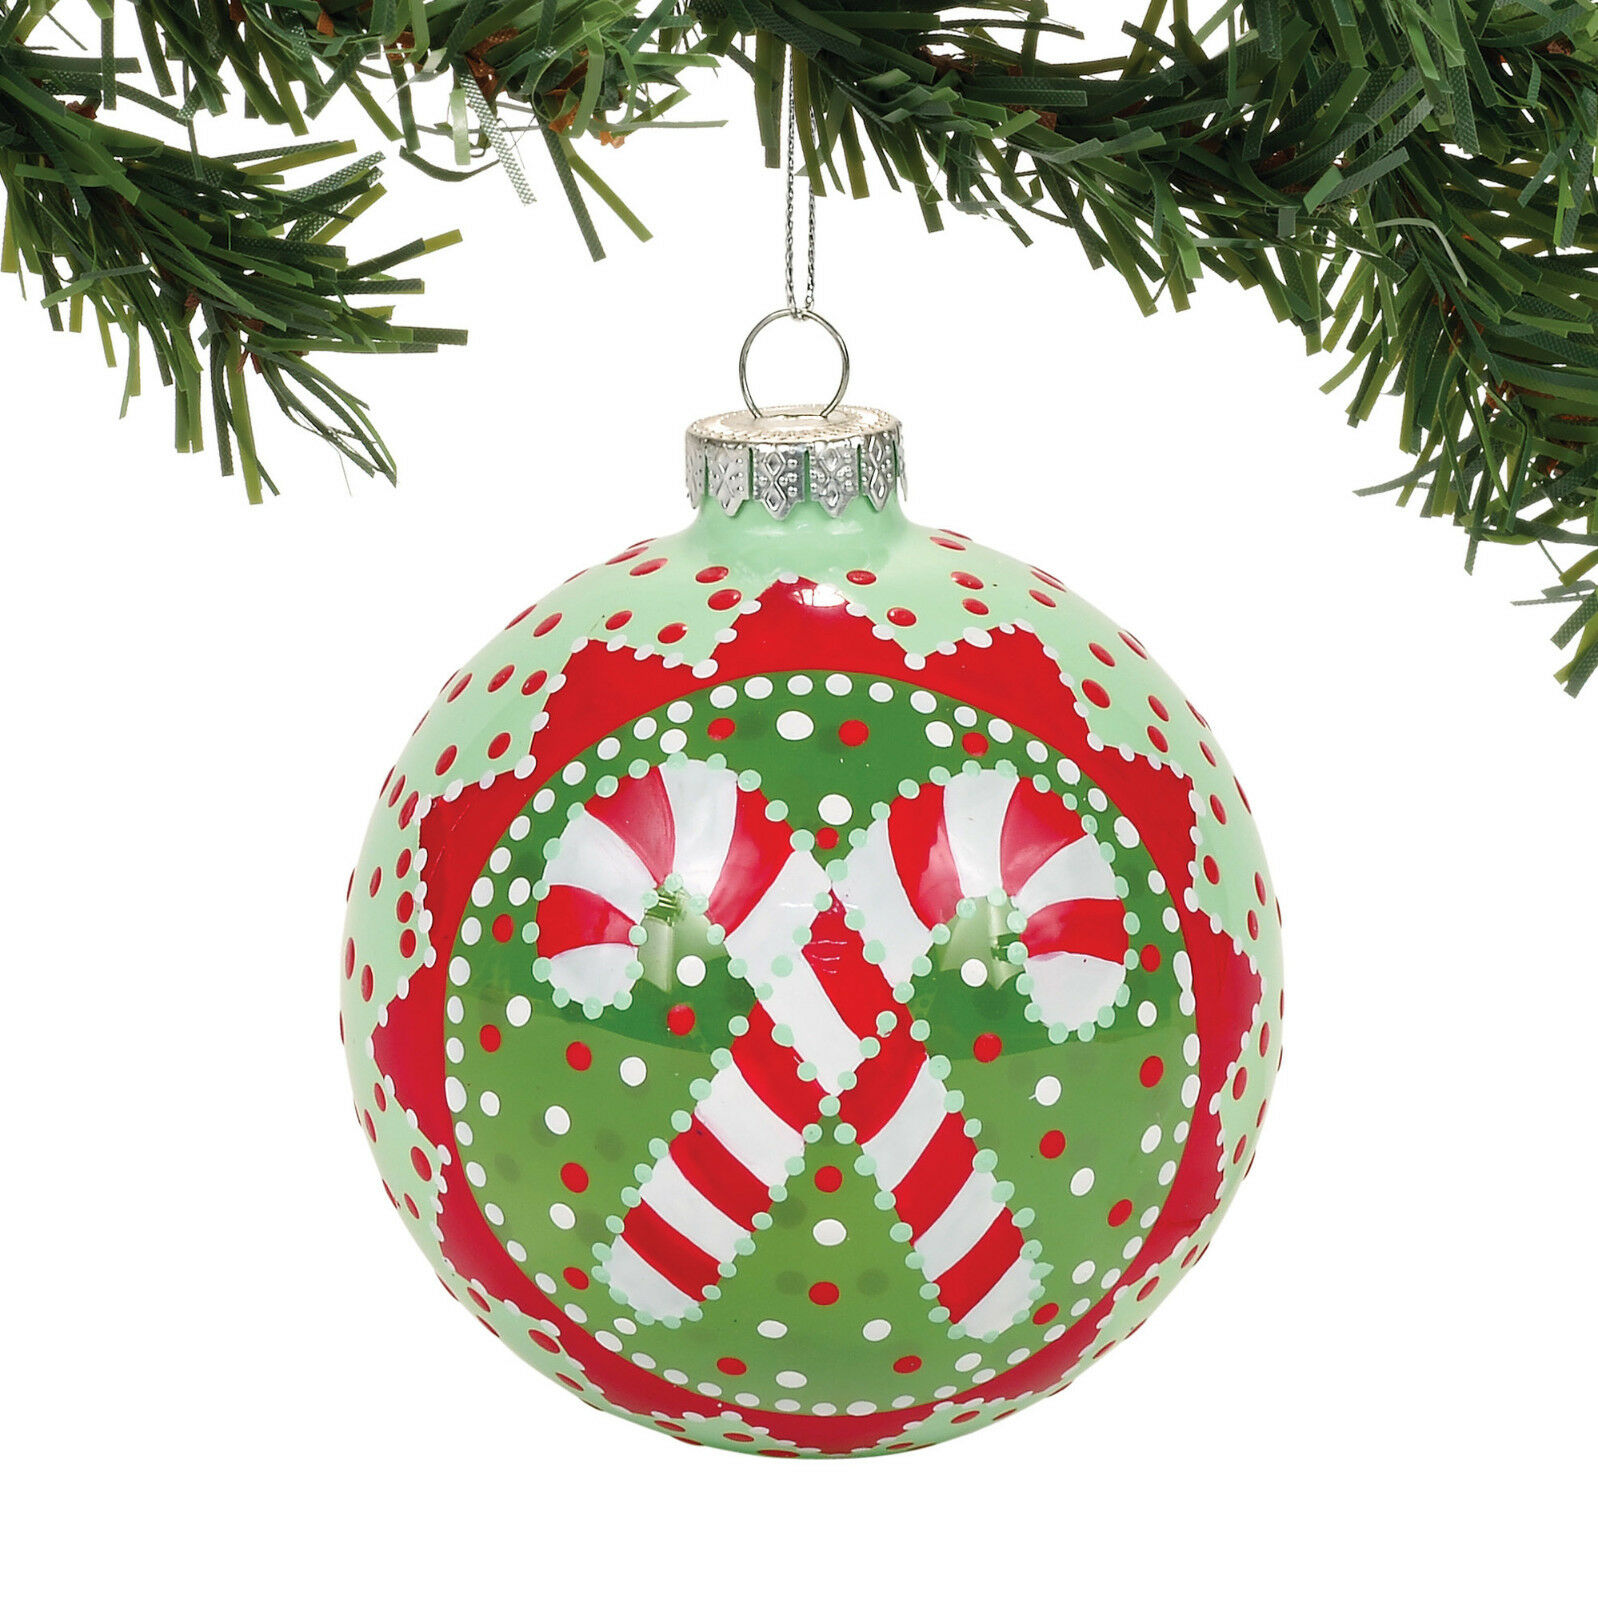 picture 1 of 1 - Candy Cane Christmas Shop